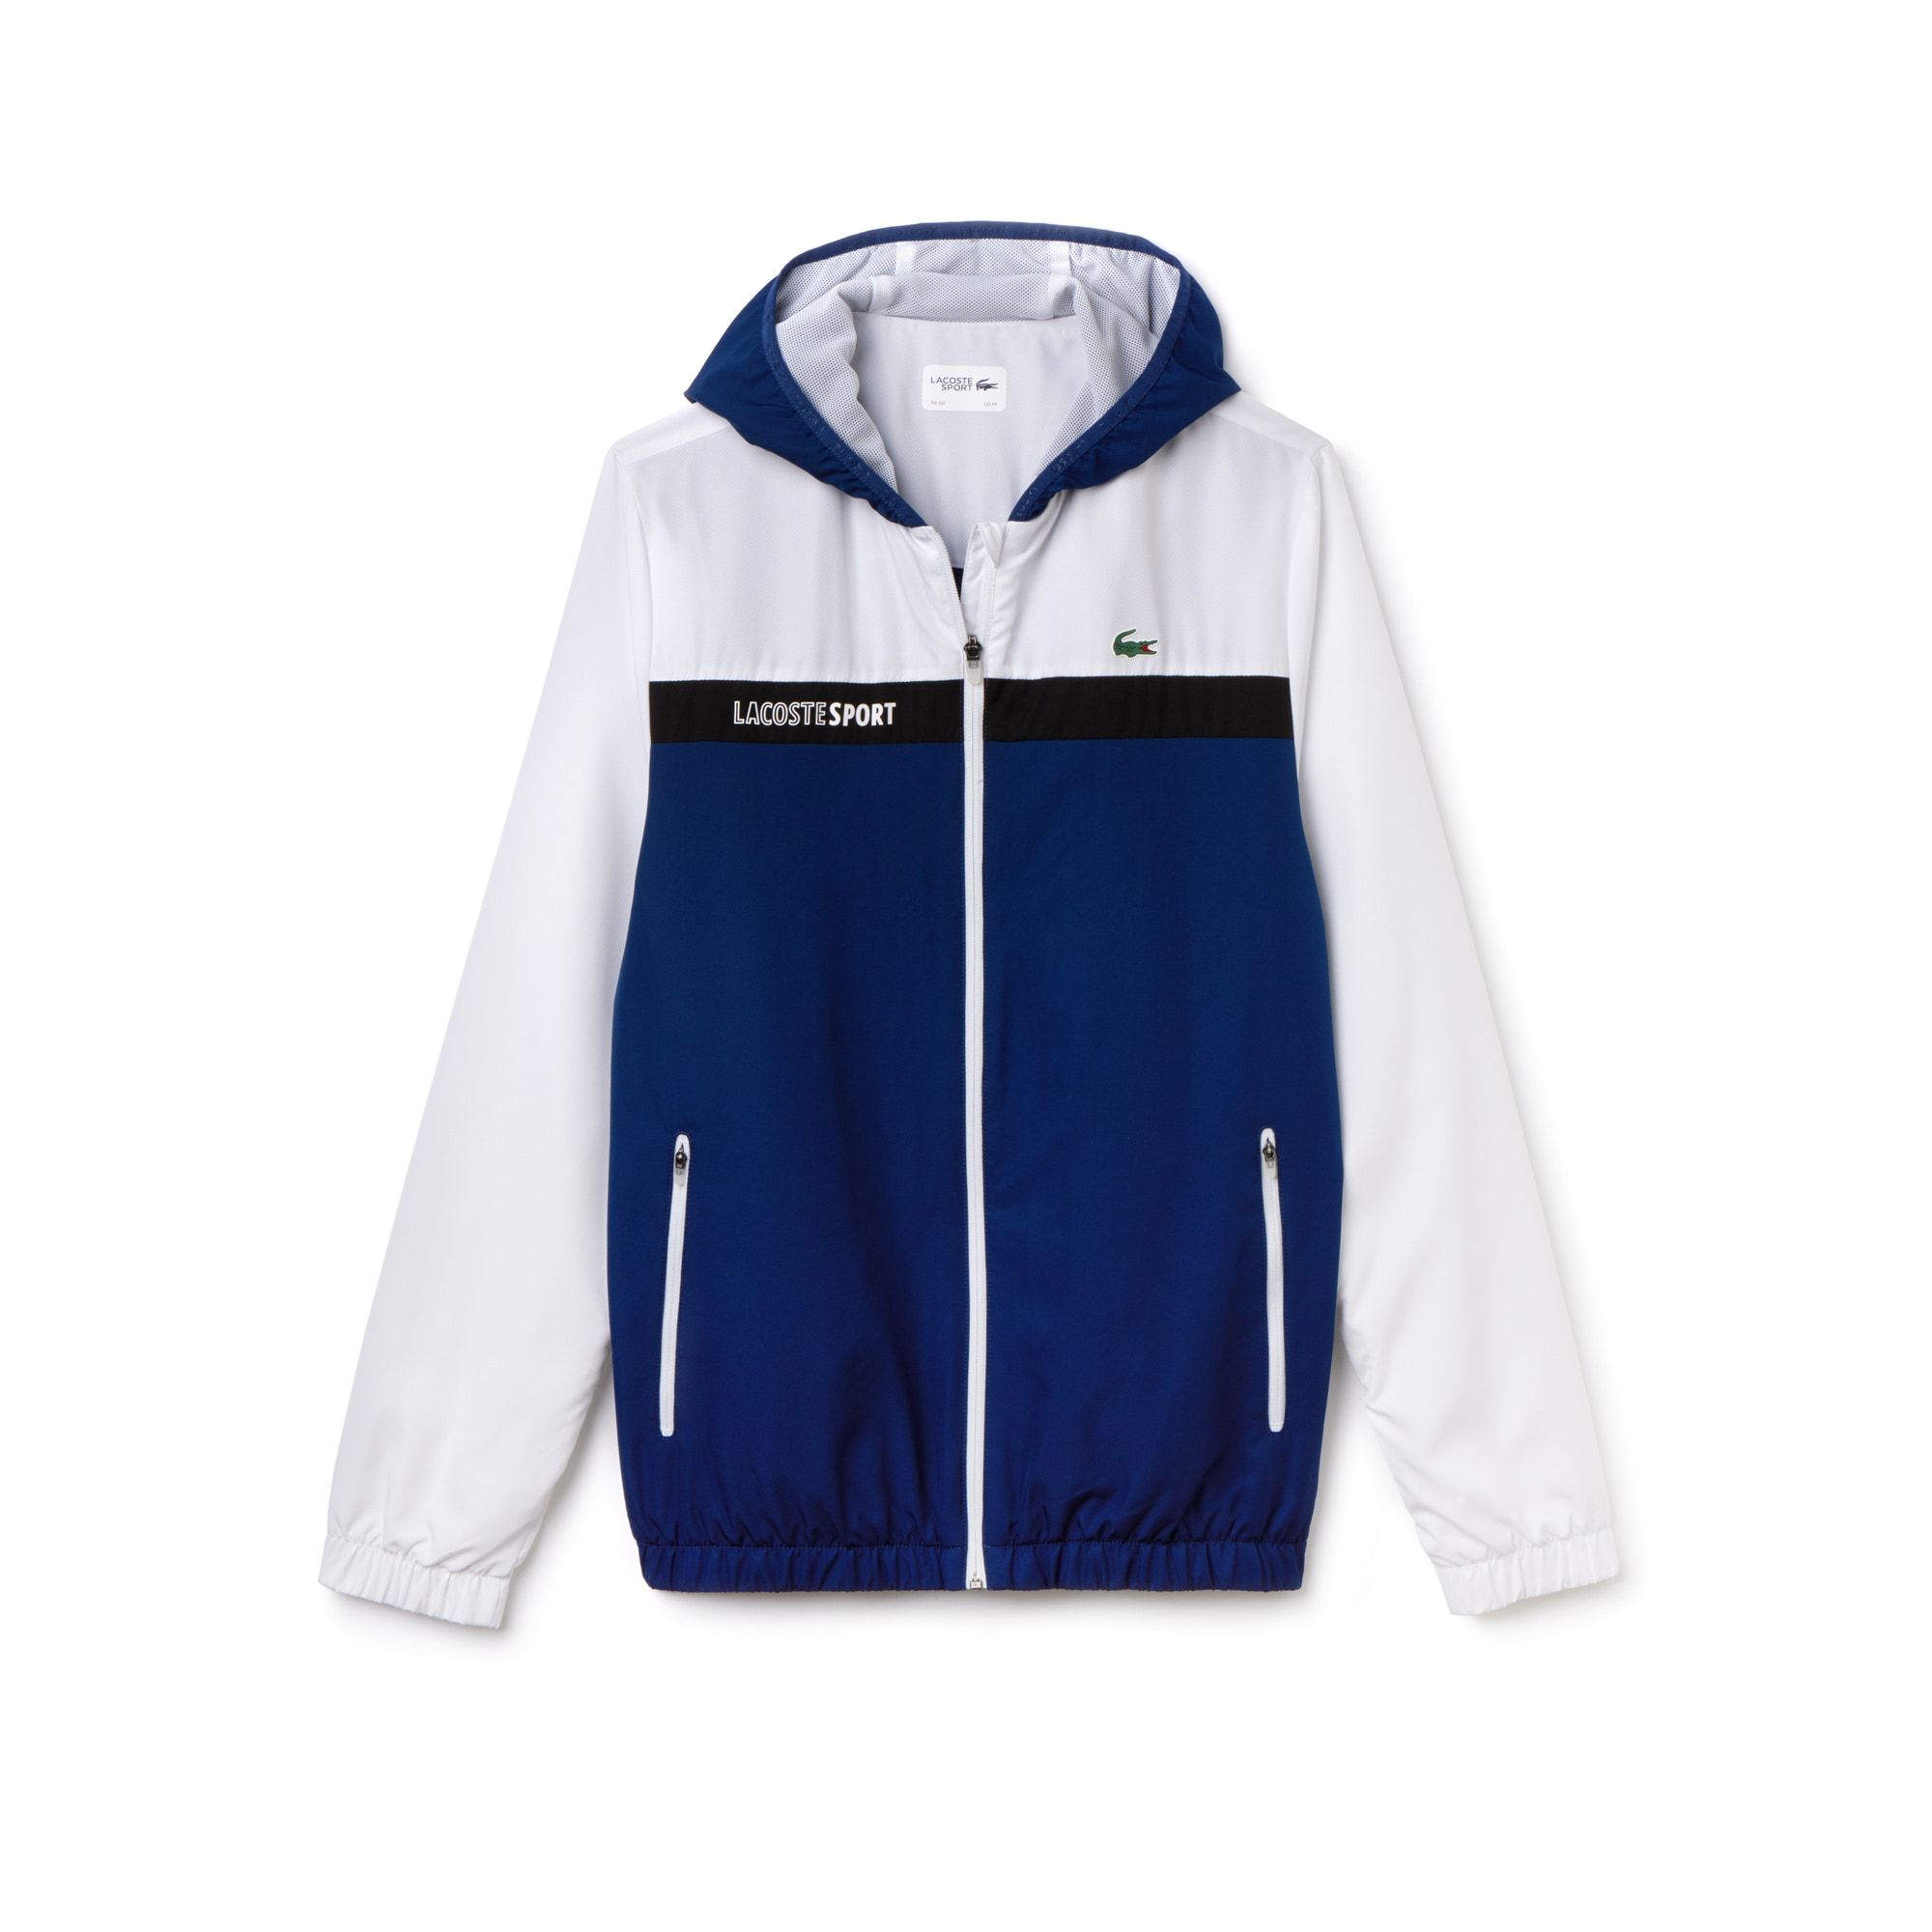 Men's SPORT Hooded Colorblock Taffeta Tennis Jacket